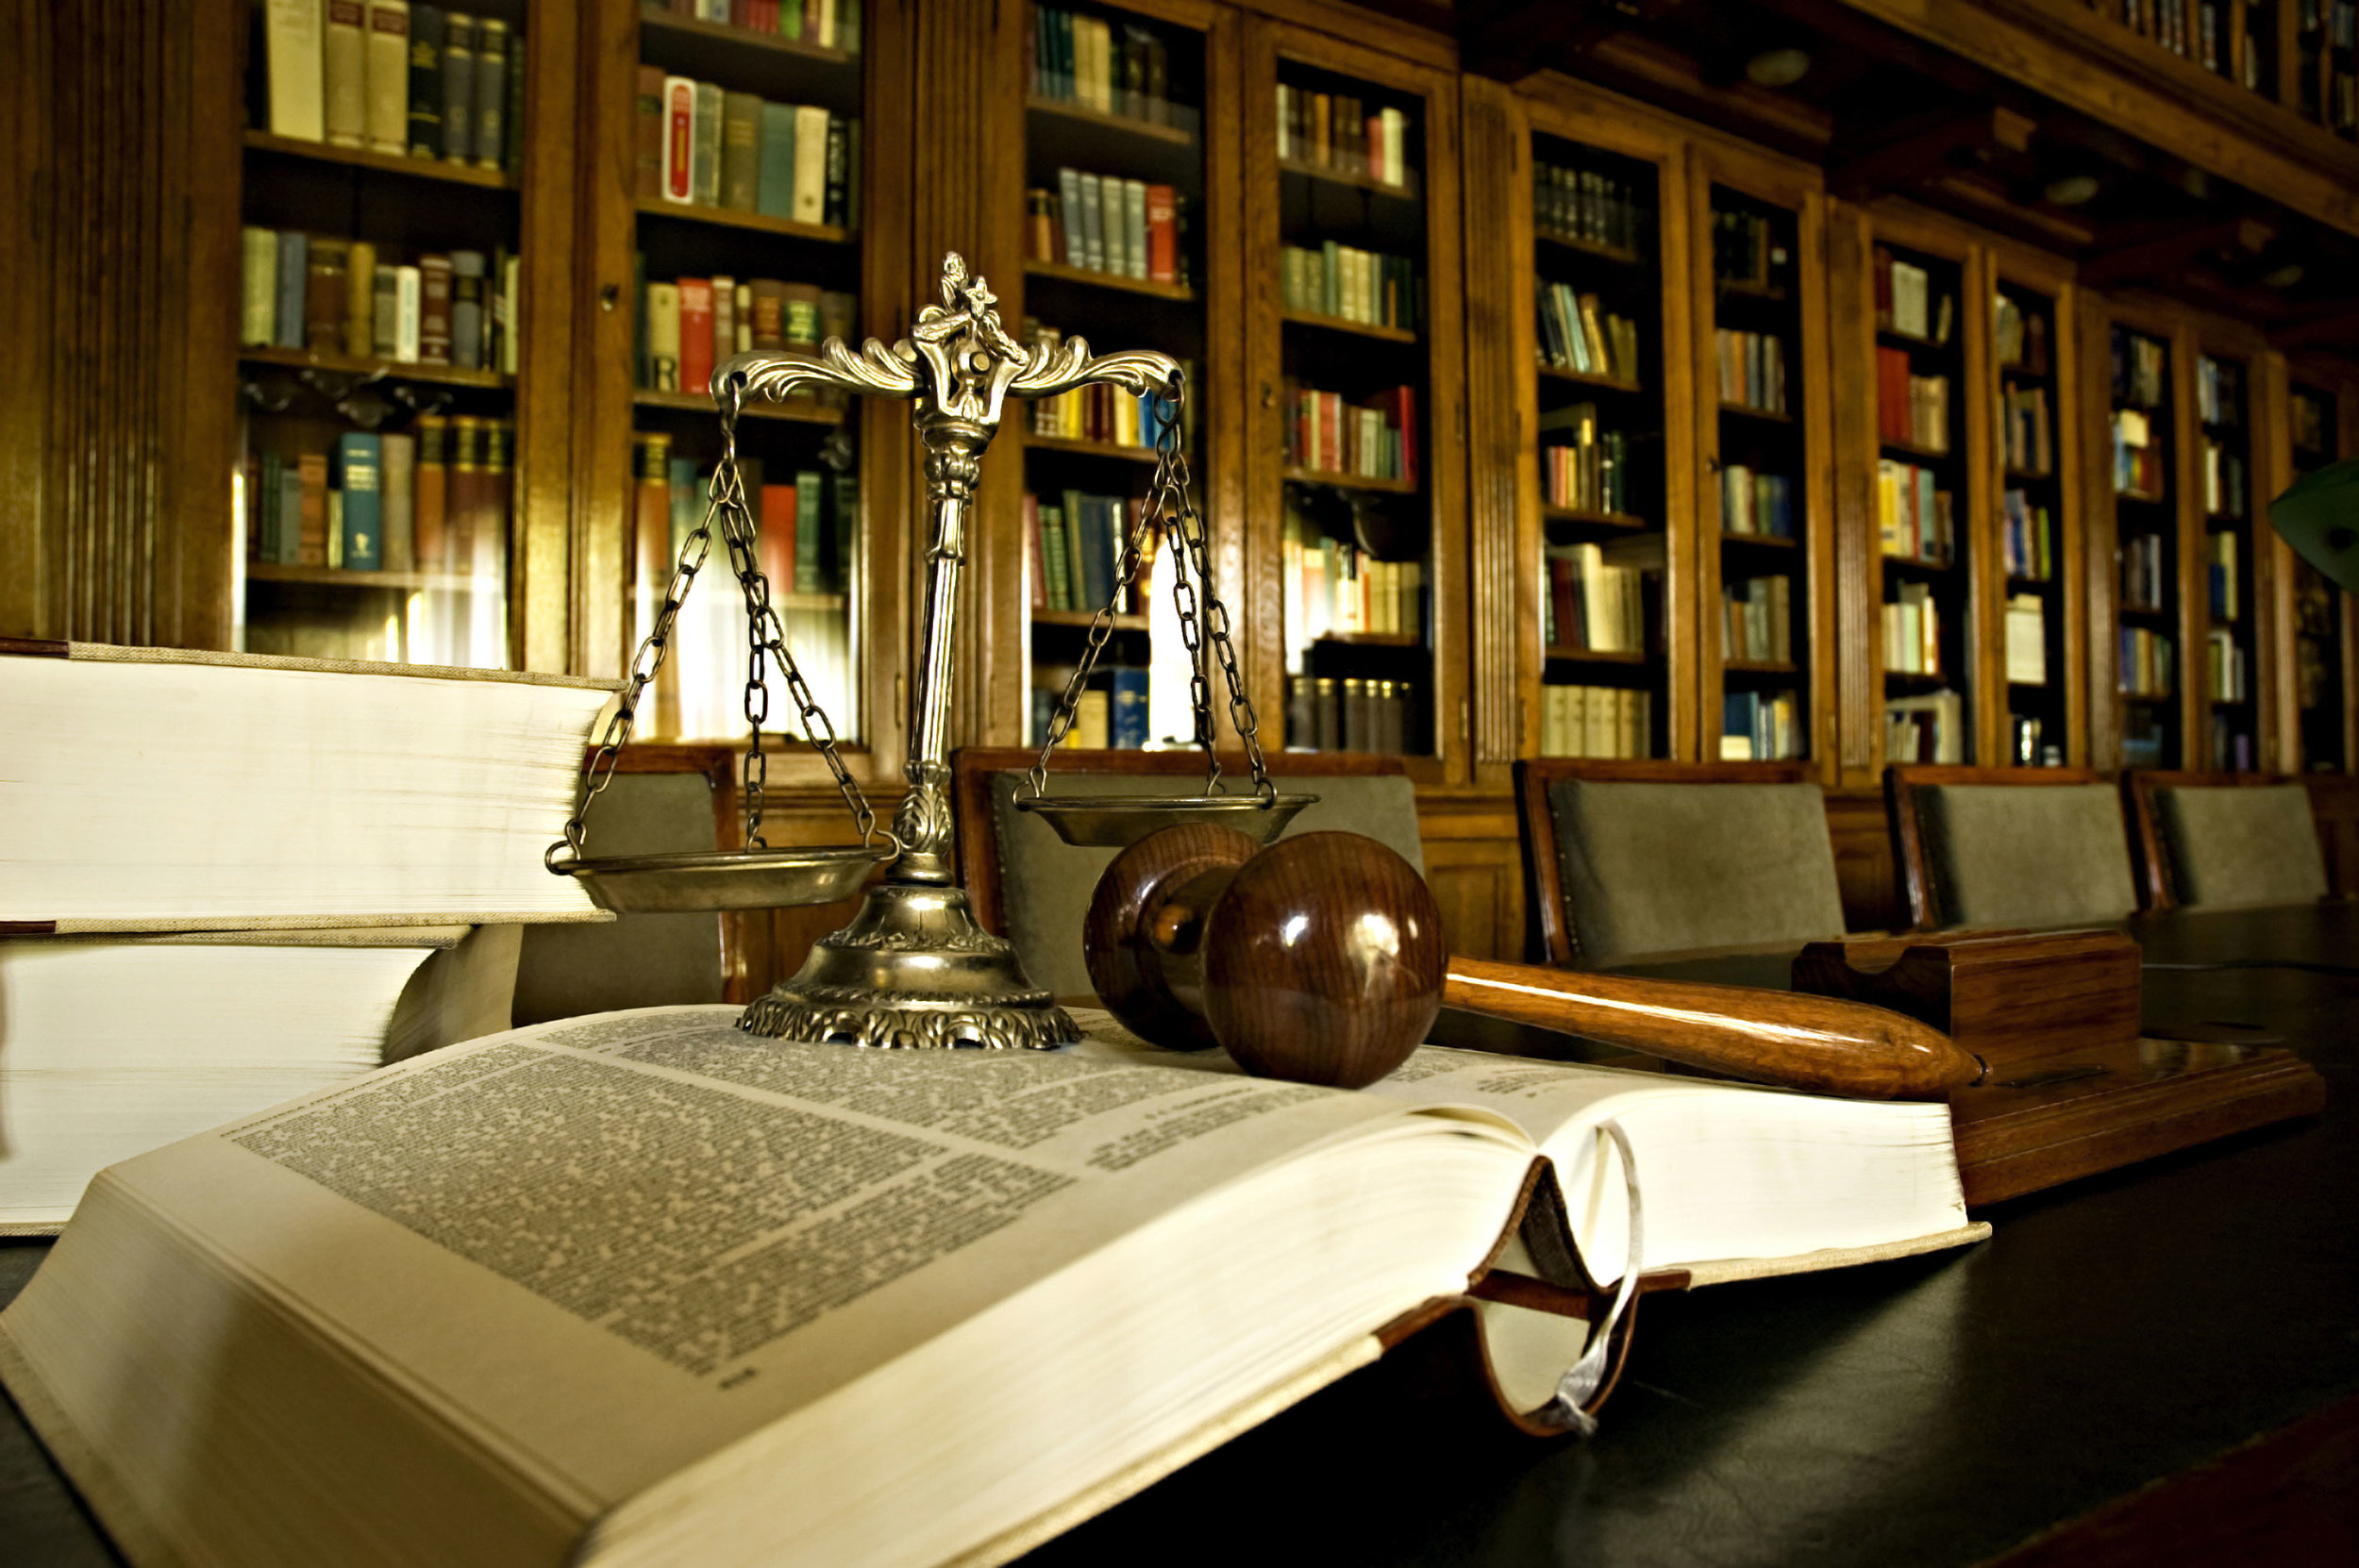 shutterstock_legal-library.jpg